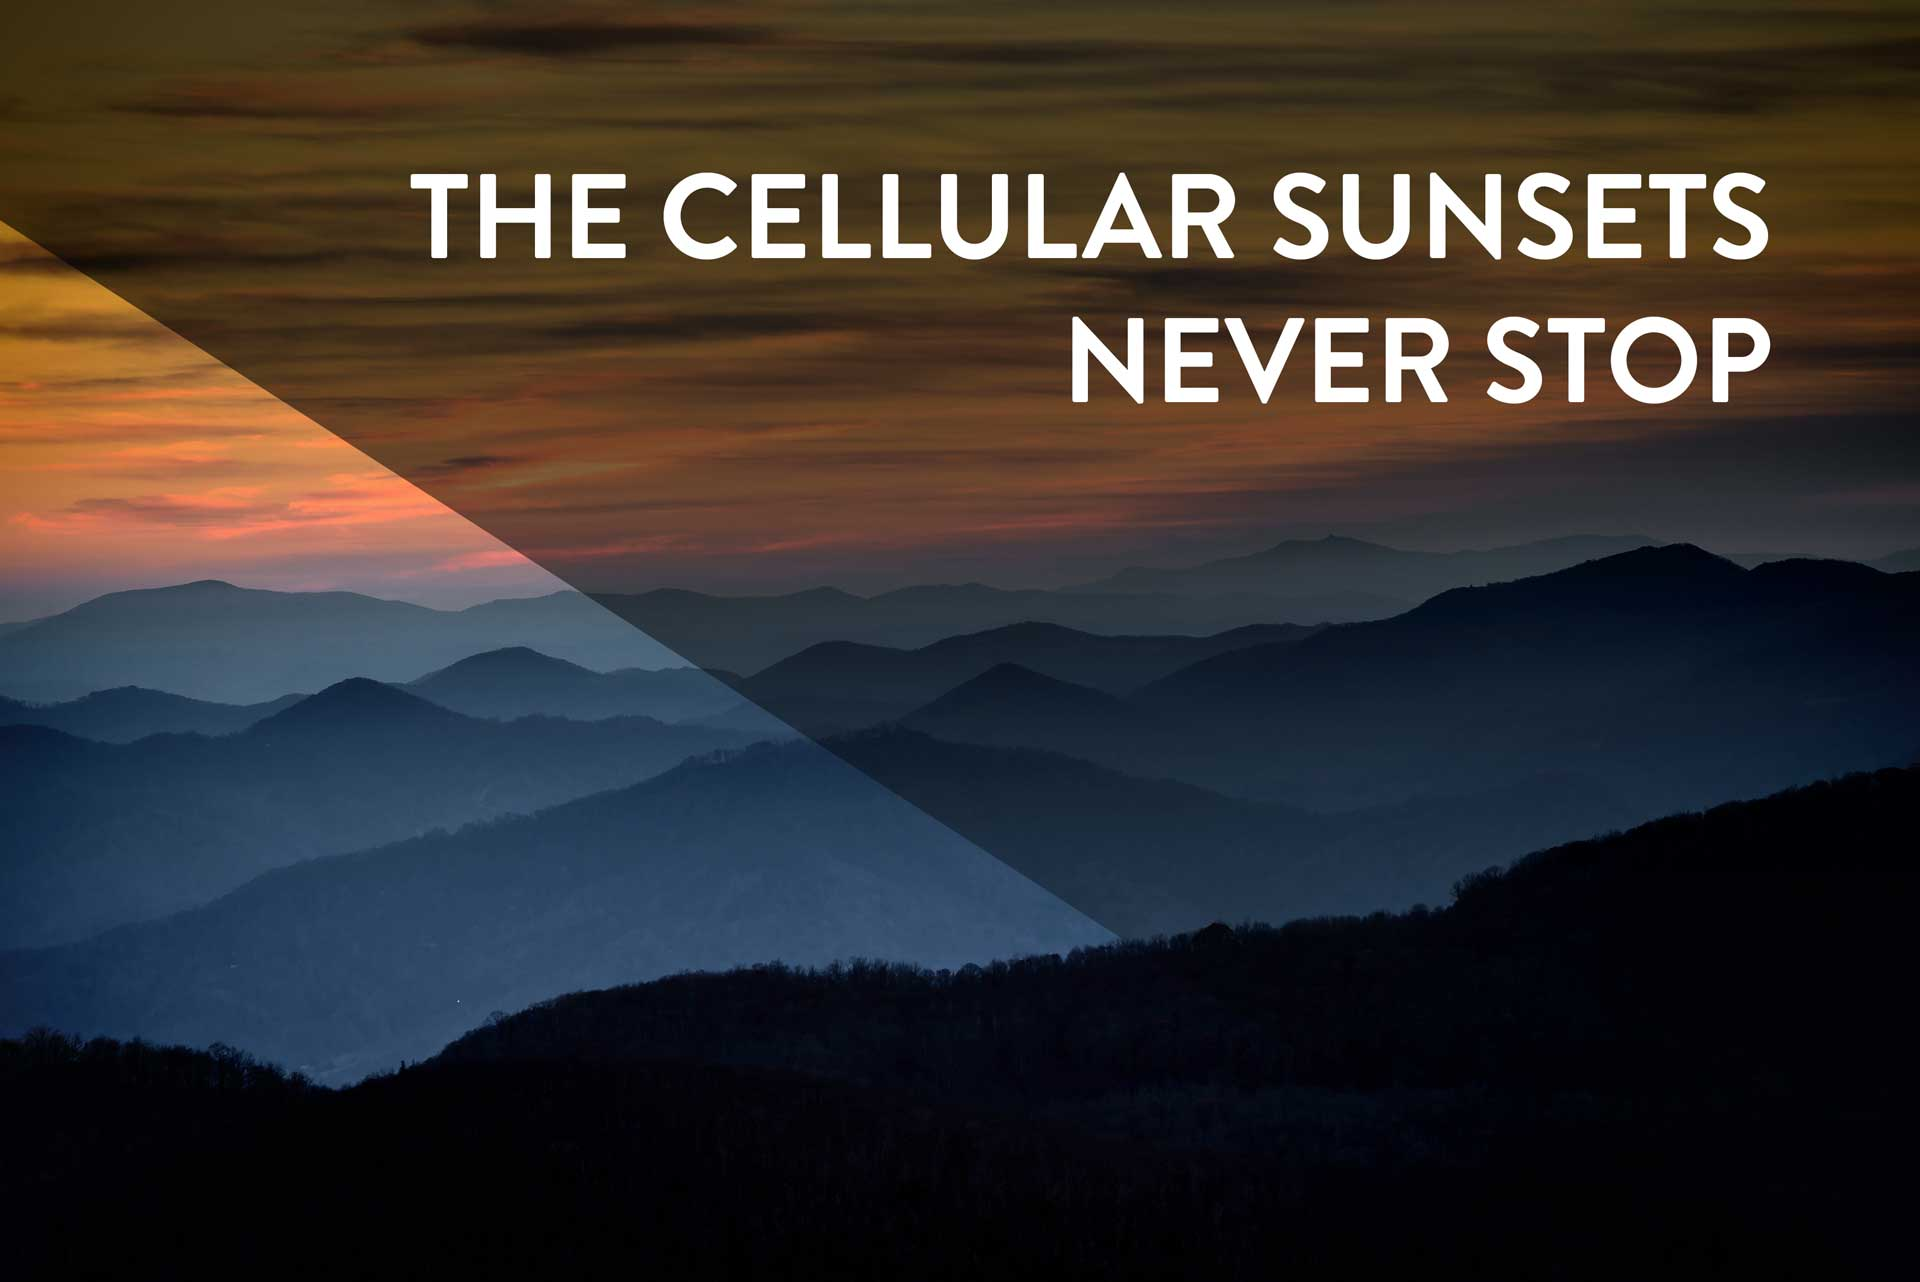 Cellular Sunsets Never Stop